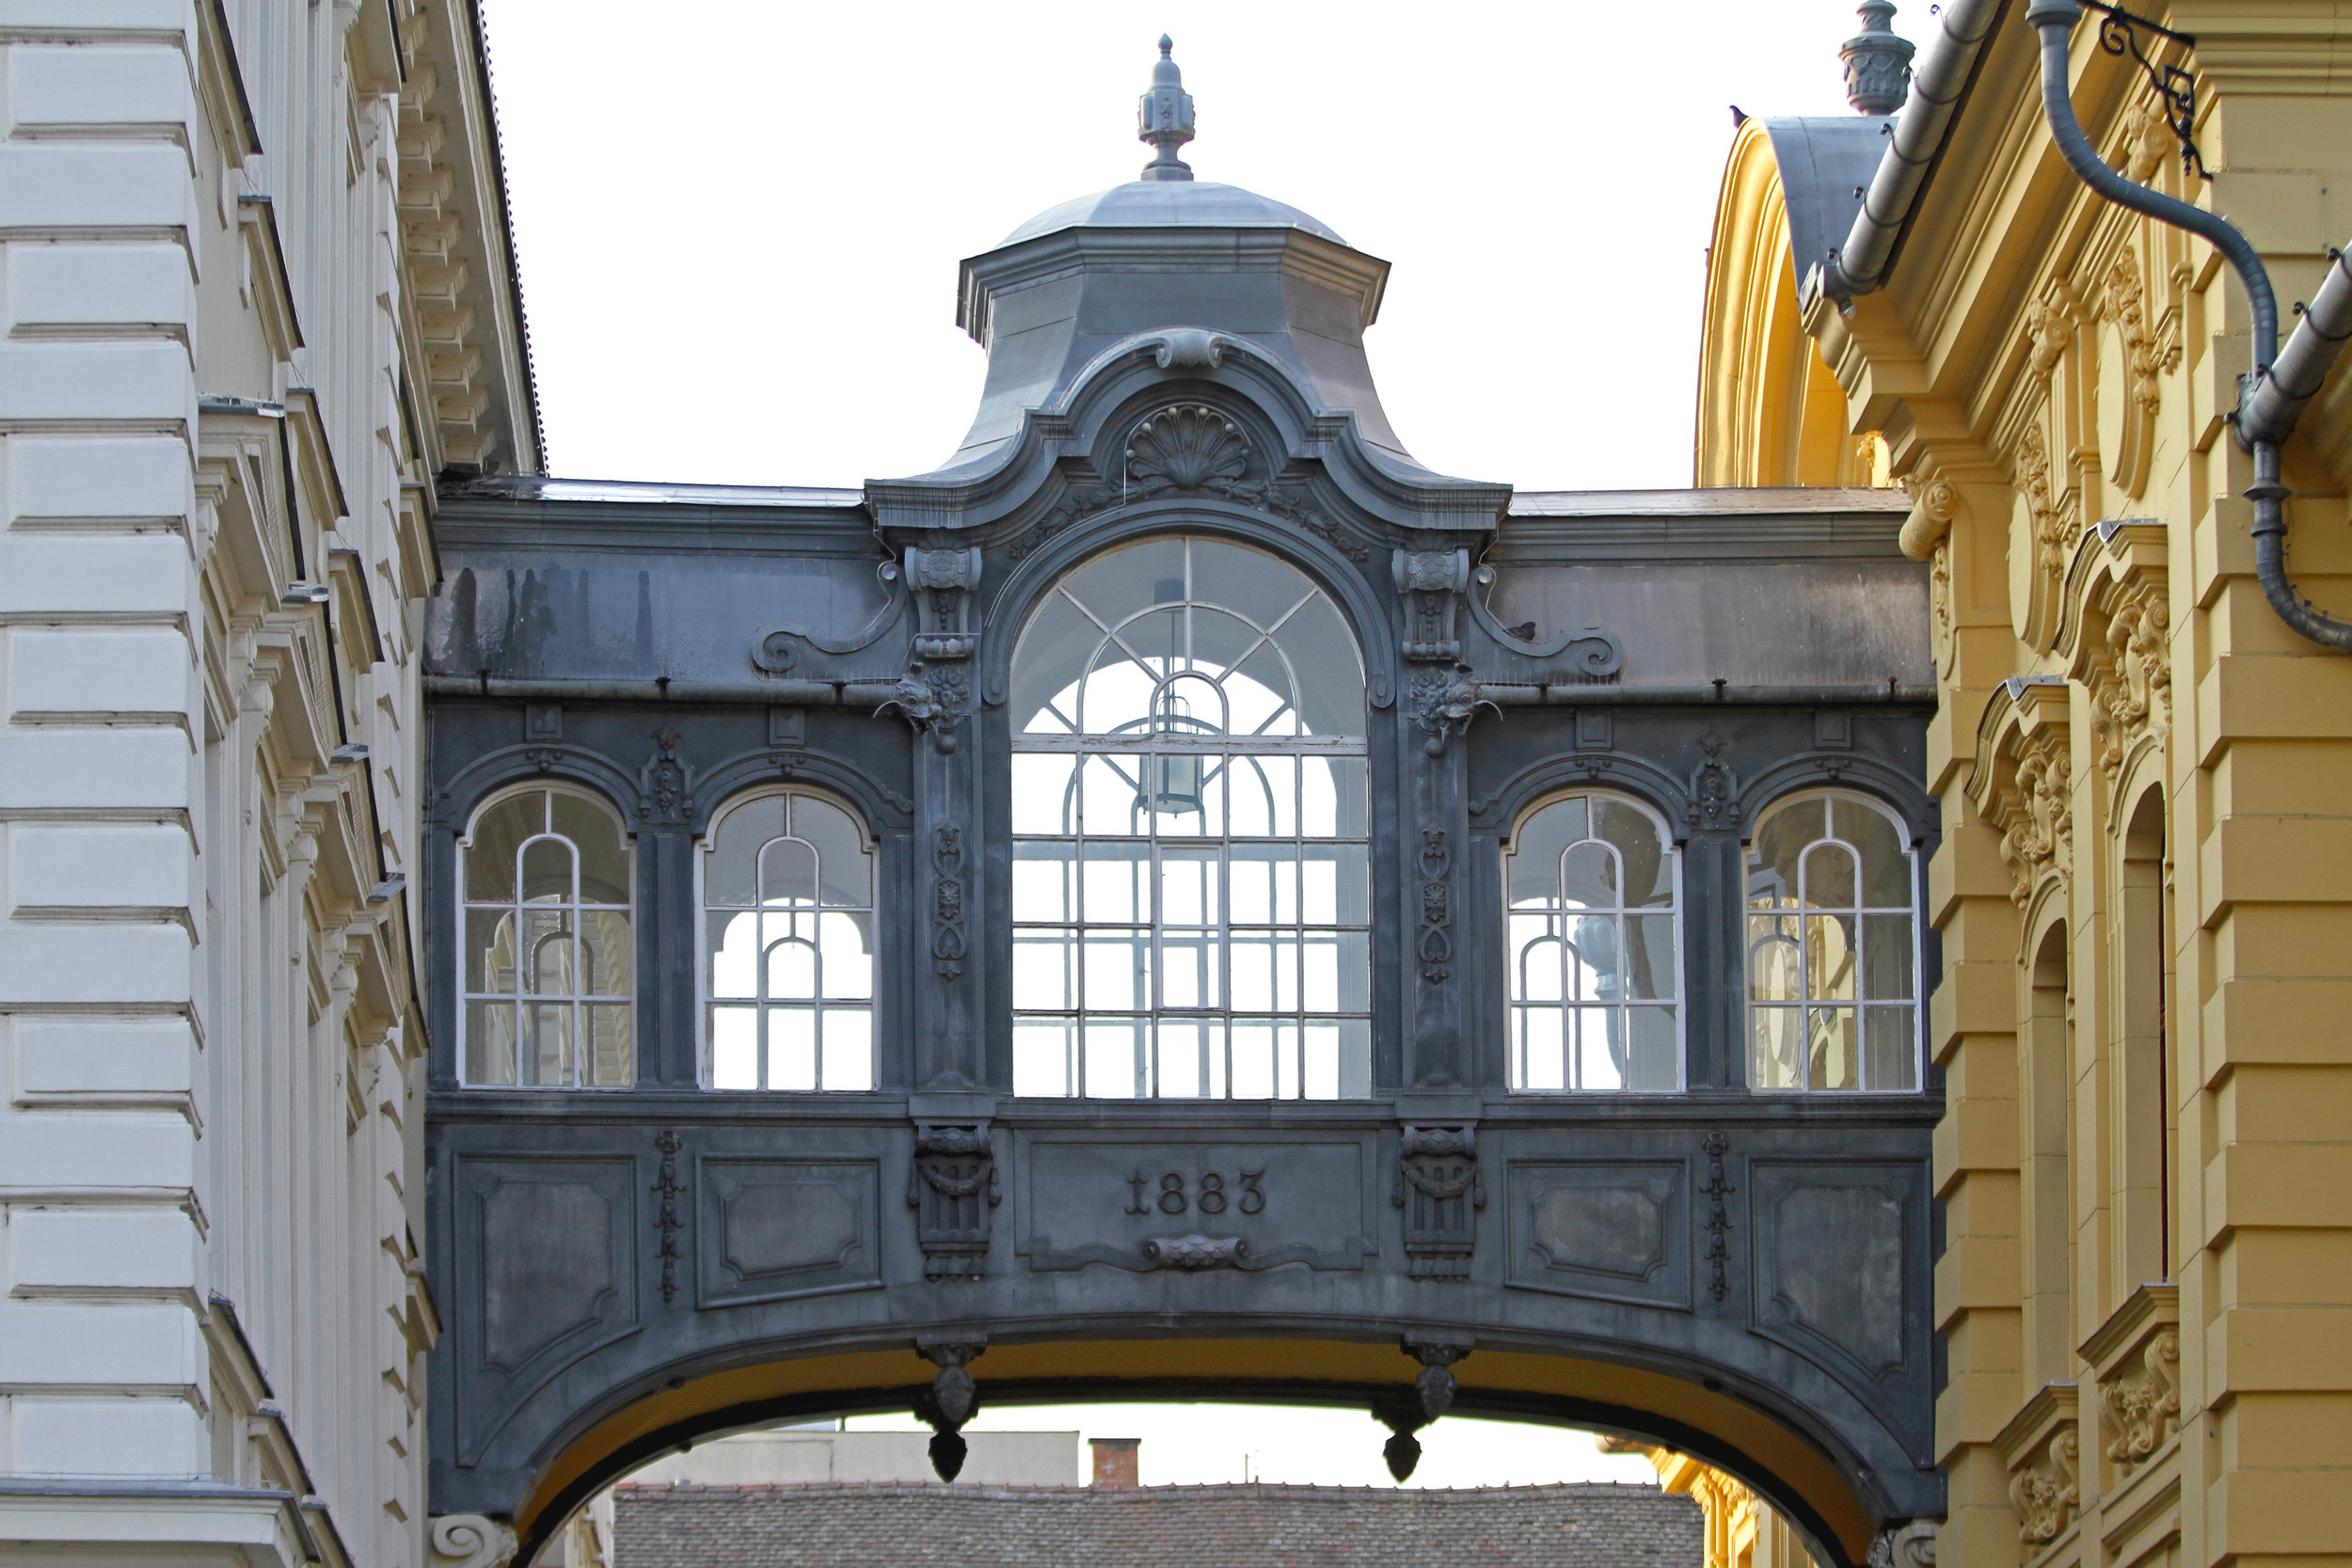 Bridge of Sighs, Szeged